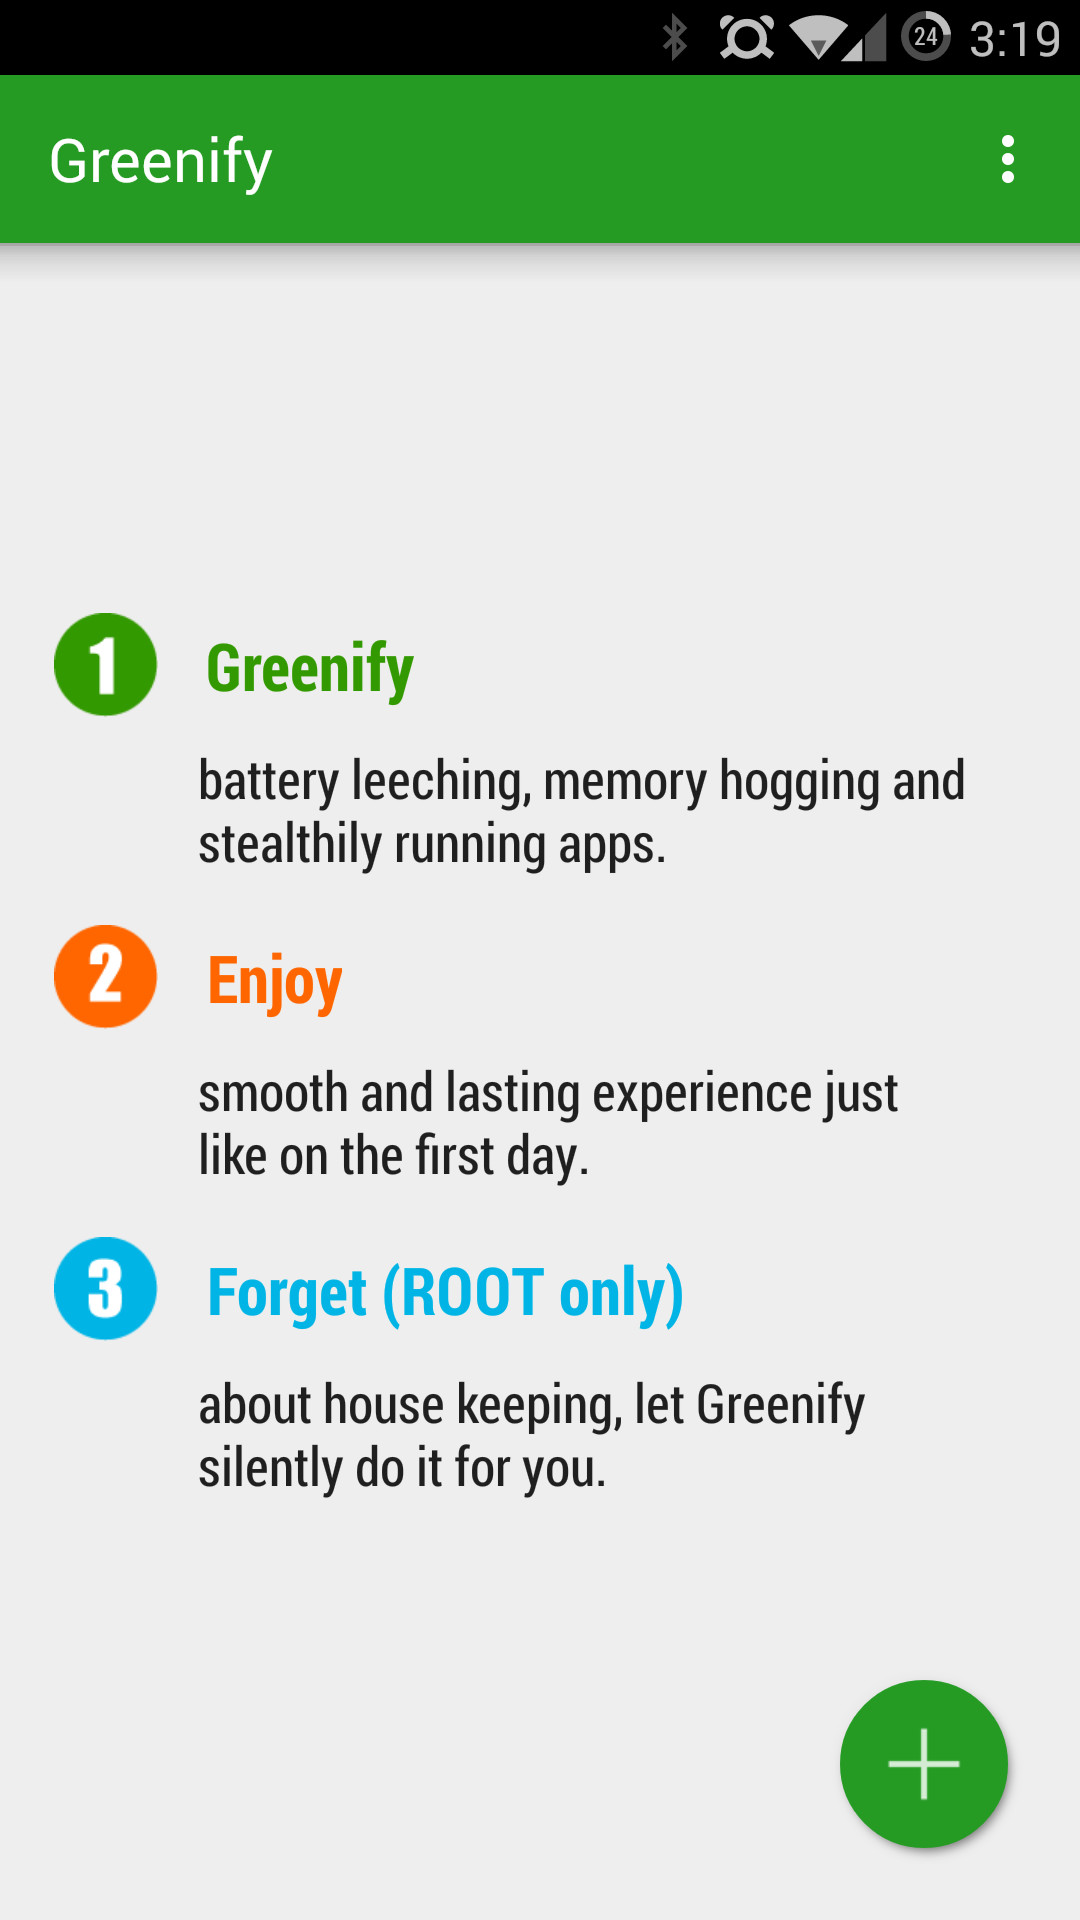 Greenify Updated With Lollipop Support, Material Design, And More